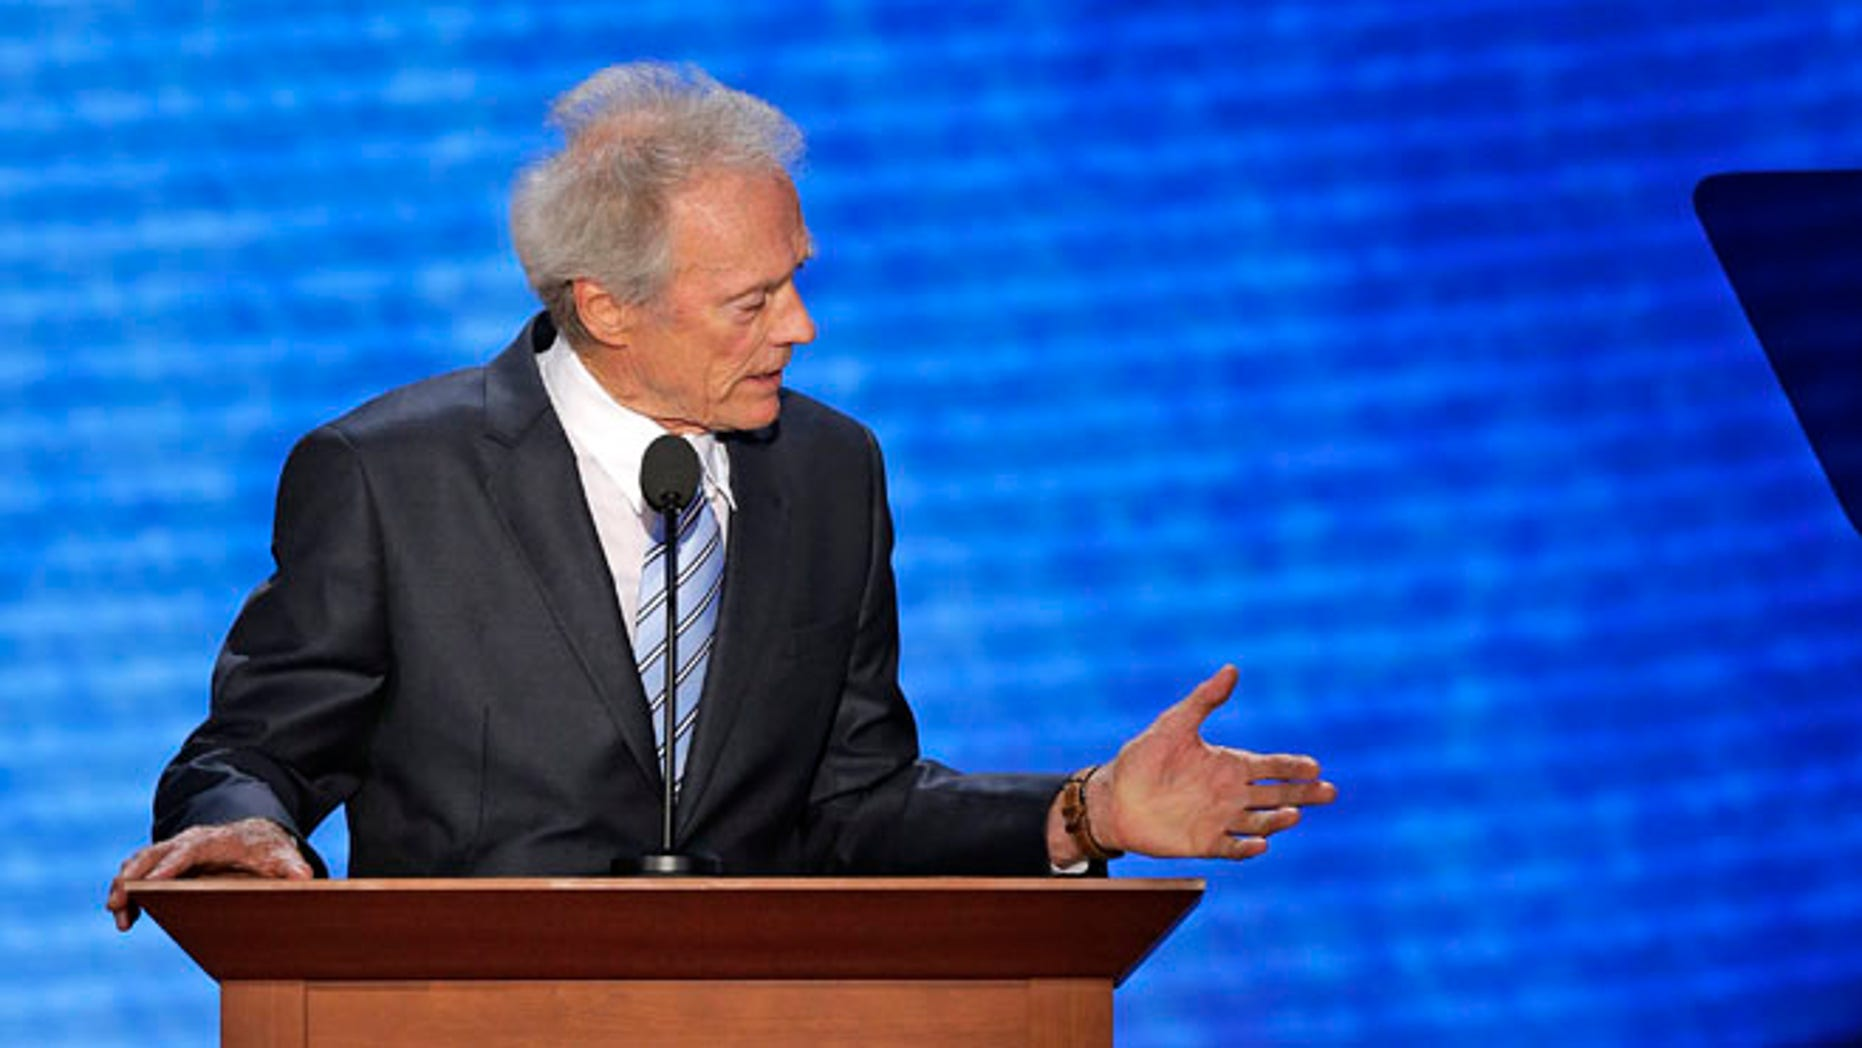 Aug. 30, 2012: Actor Clint Eastwood talks to an empty chair during his address to the Republican National Convention in Tampa, Fla. (AP)